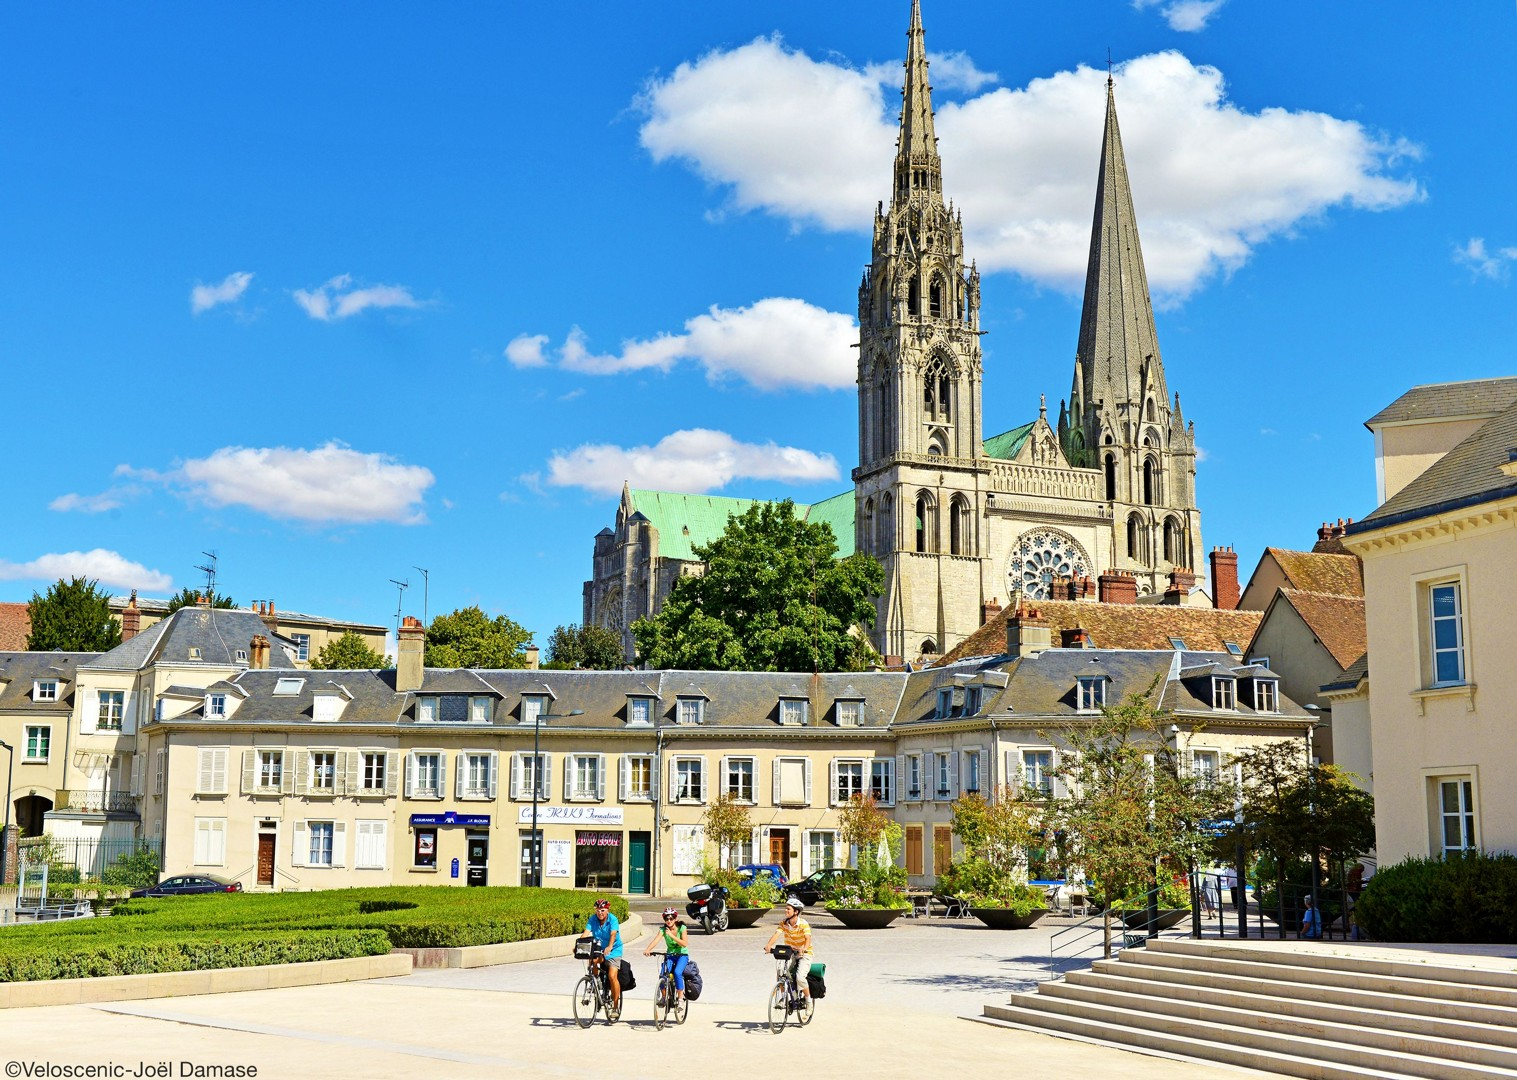 chartres-france-cycling-leisure-holiday-culture-paris.jpg - France - Versailles to Mont Saint Michel - Self-Guided Leisure Cycling Holiday - Leisure Cycling